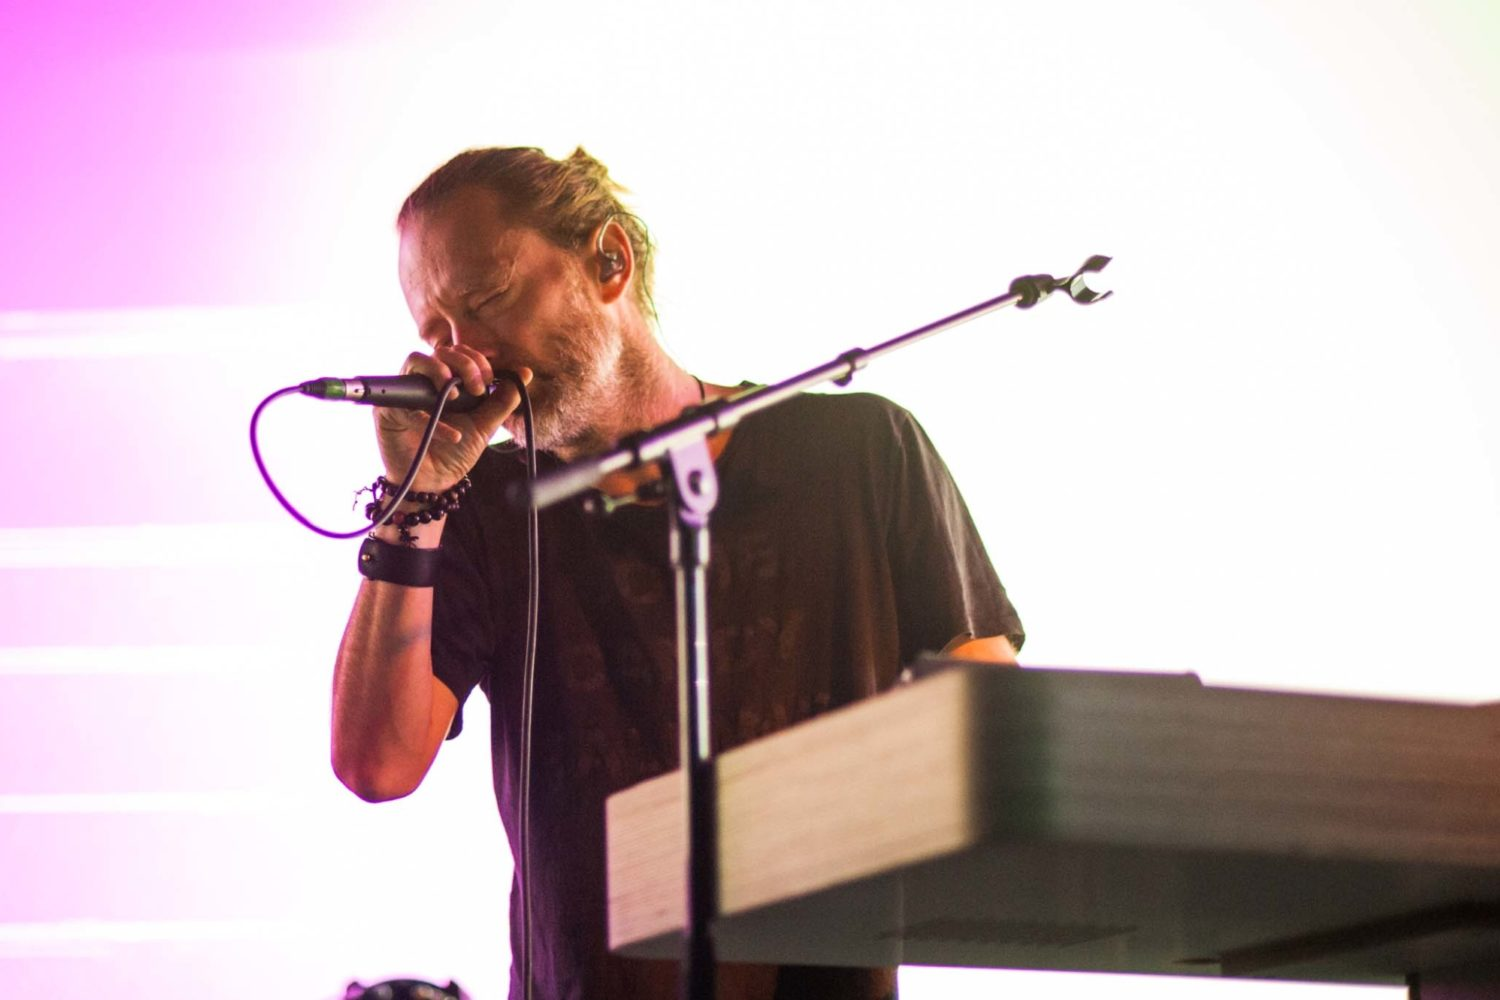 Thom Yorke and Flea play 'Atoms For Peace' on French TV